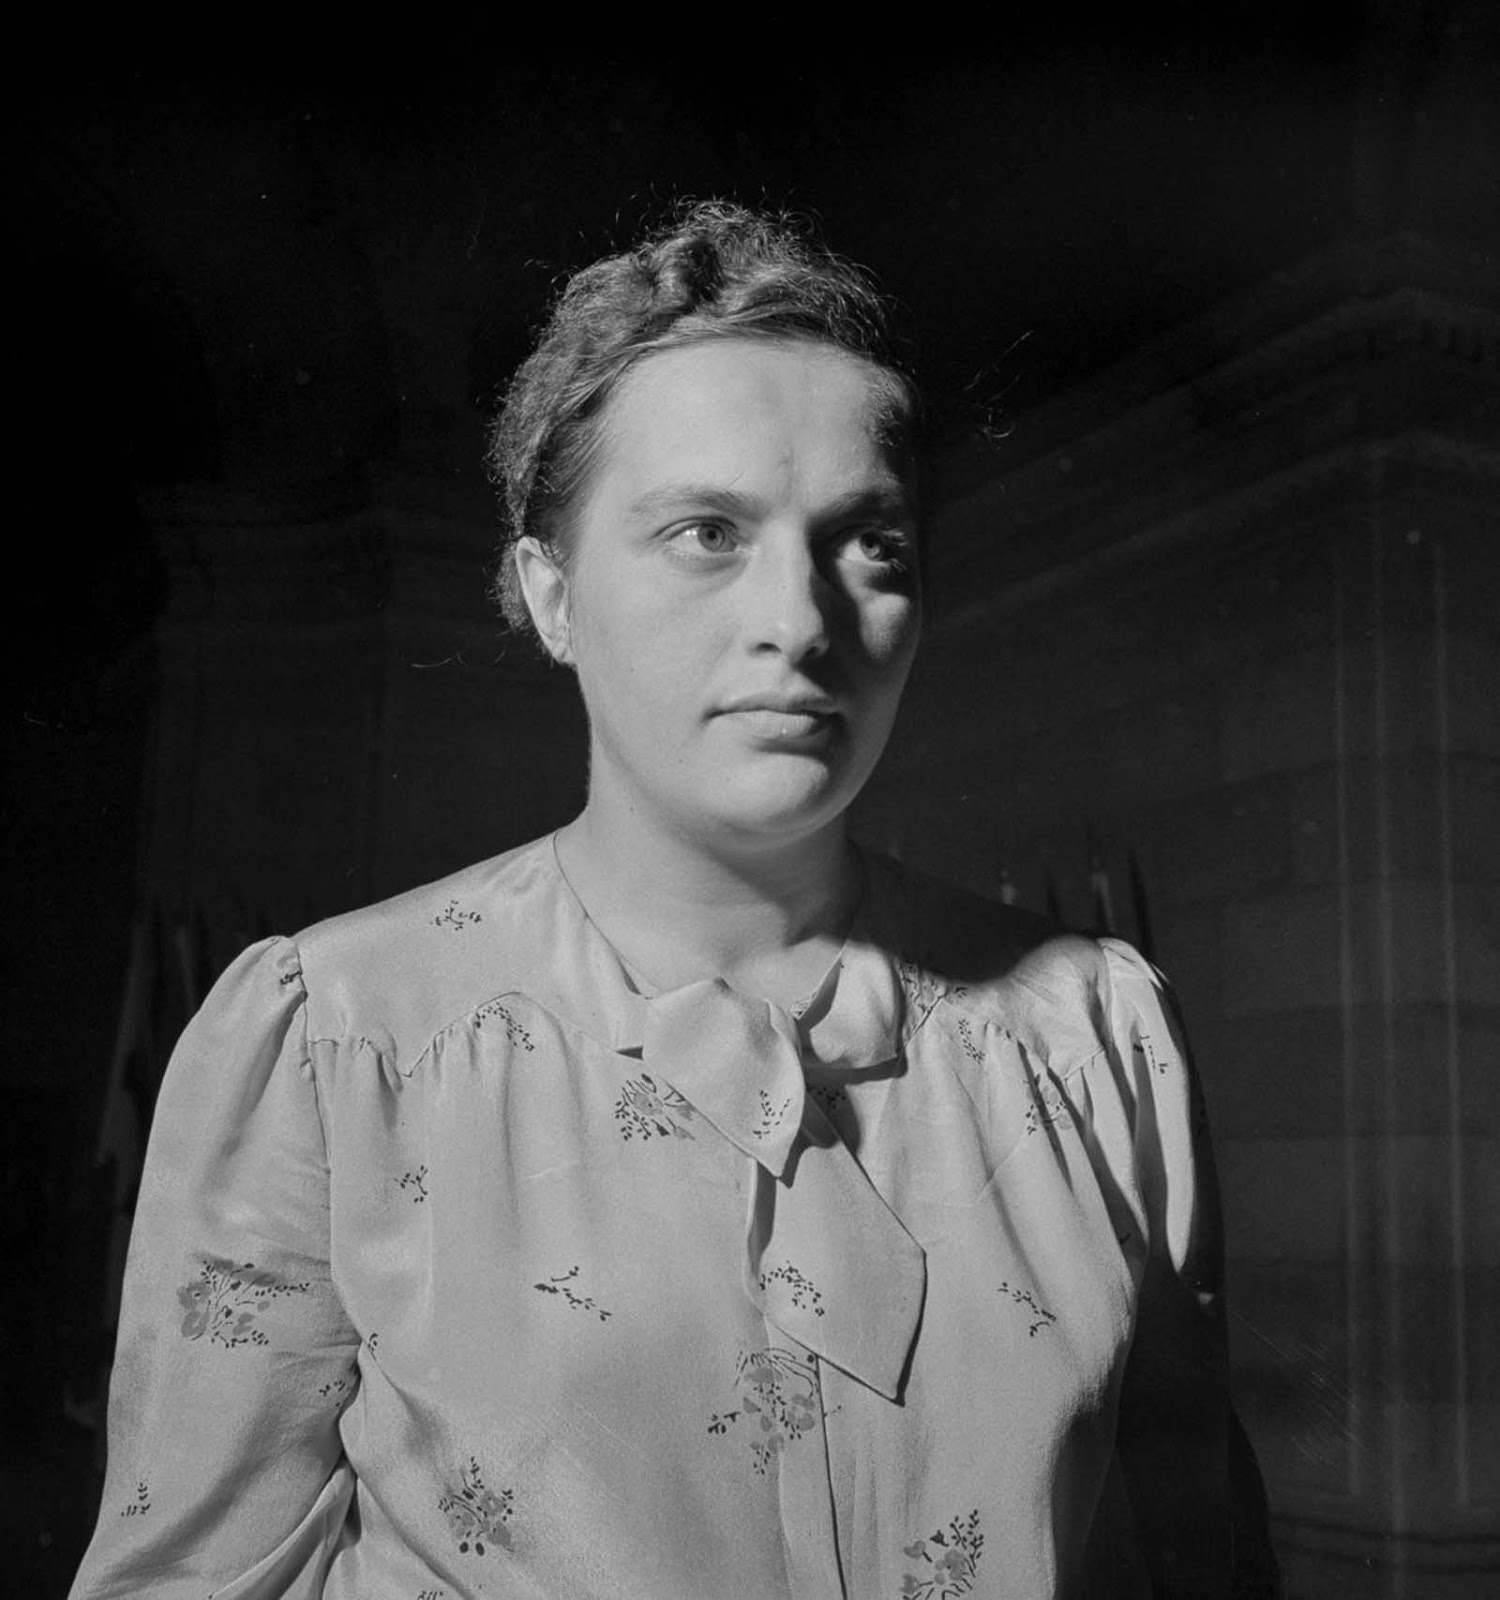 Pavlichenko during her visit to Washington, D.C. 1942.